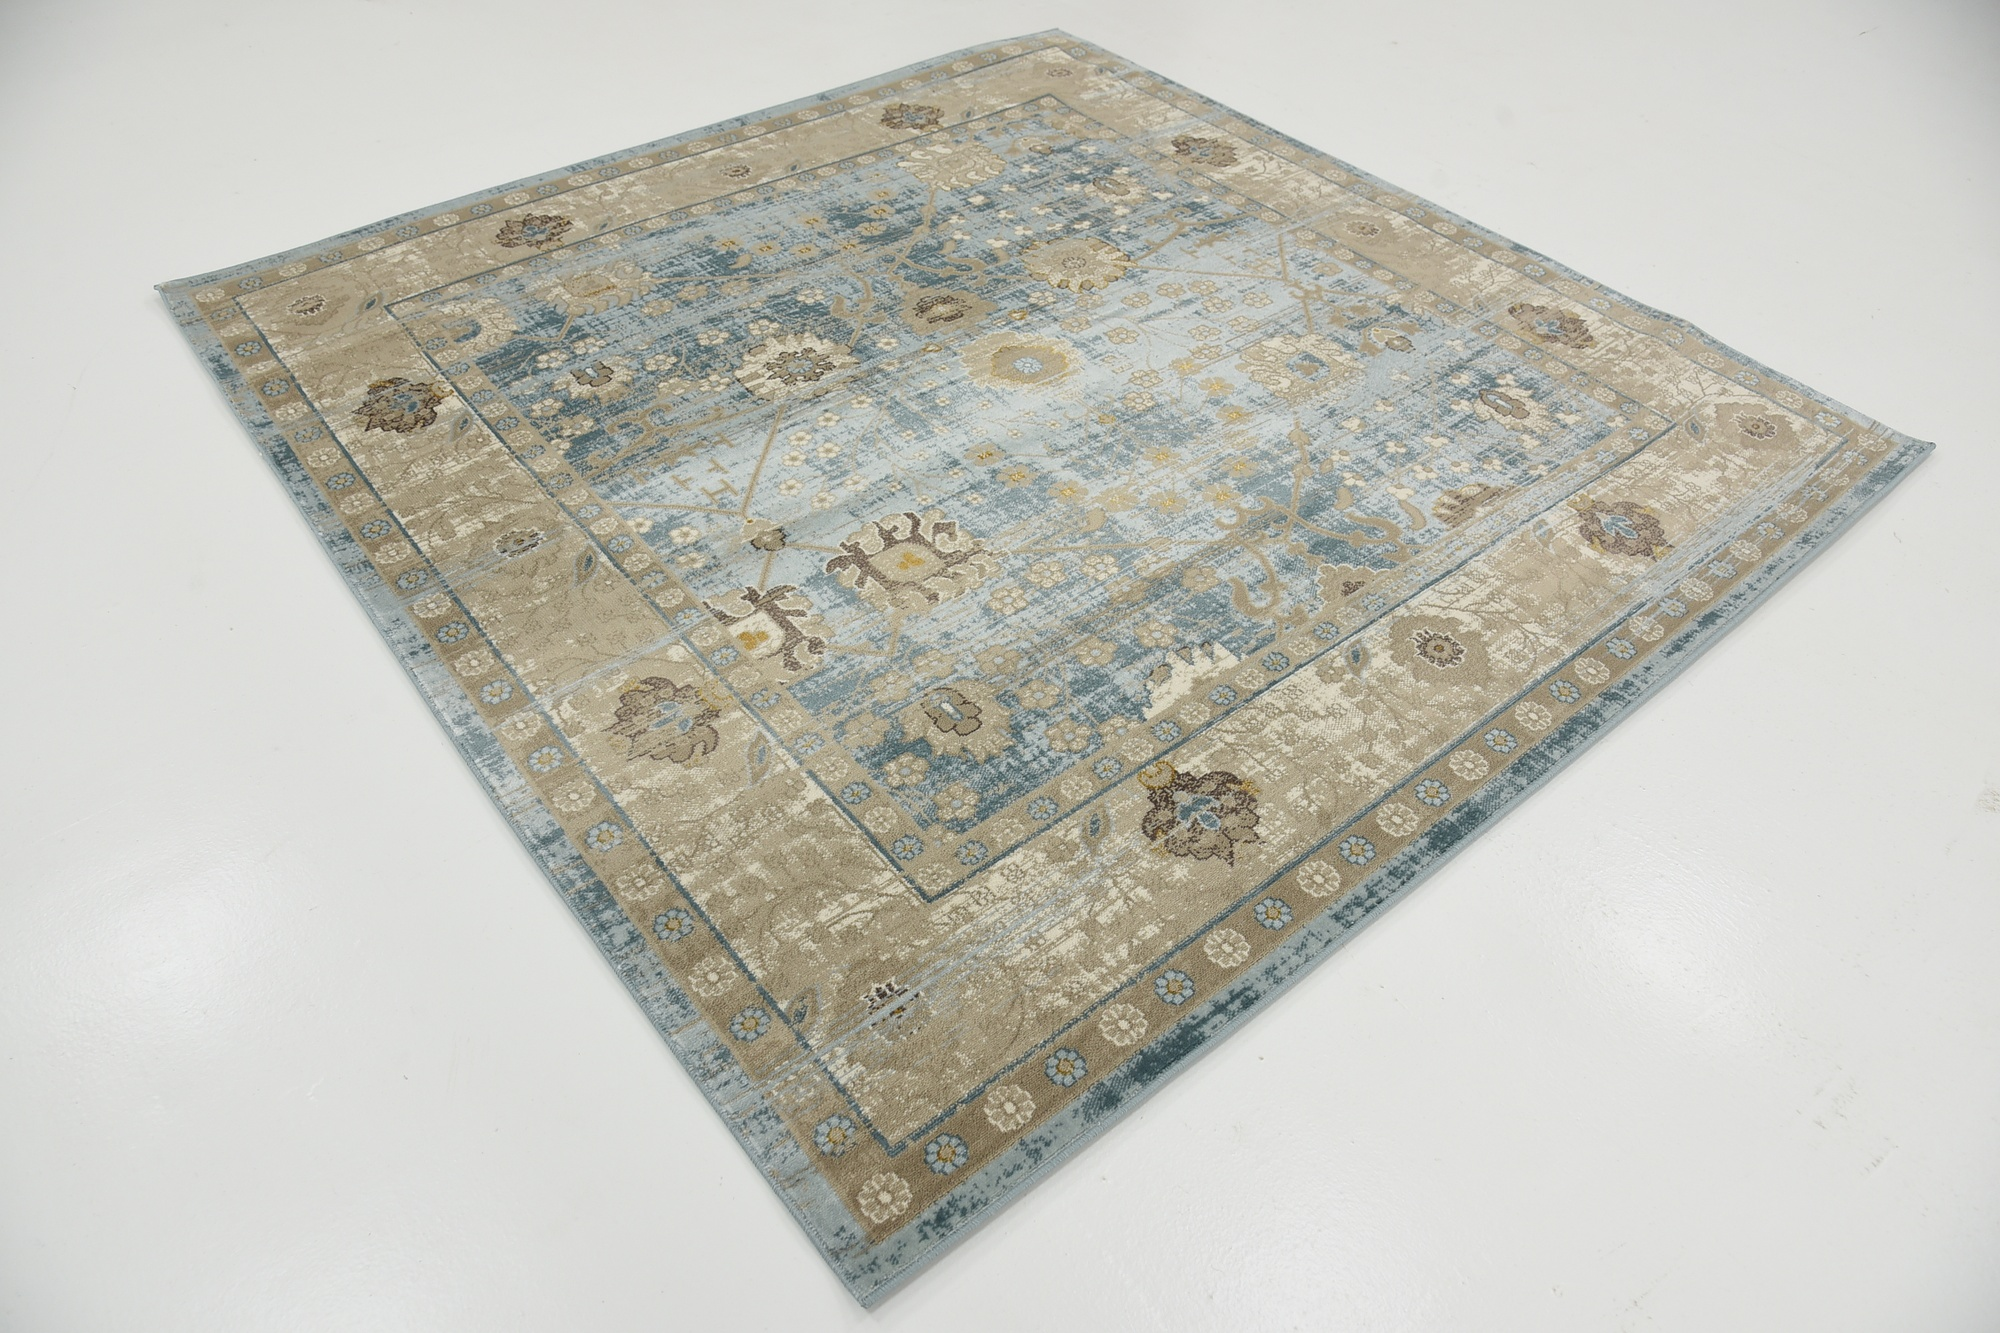 Floor area carpets traditional carpet floral rug vintage for Vintage style area rugs